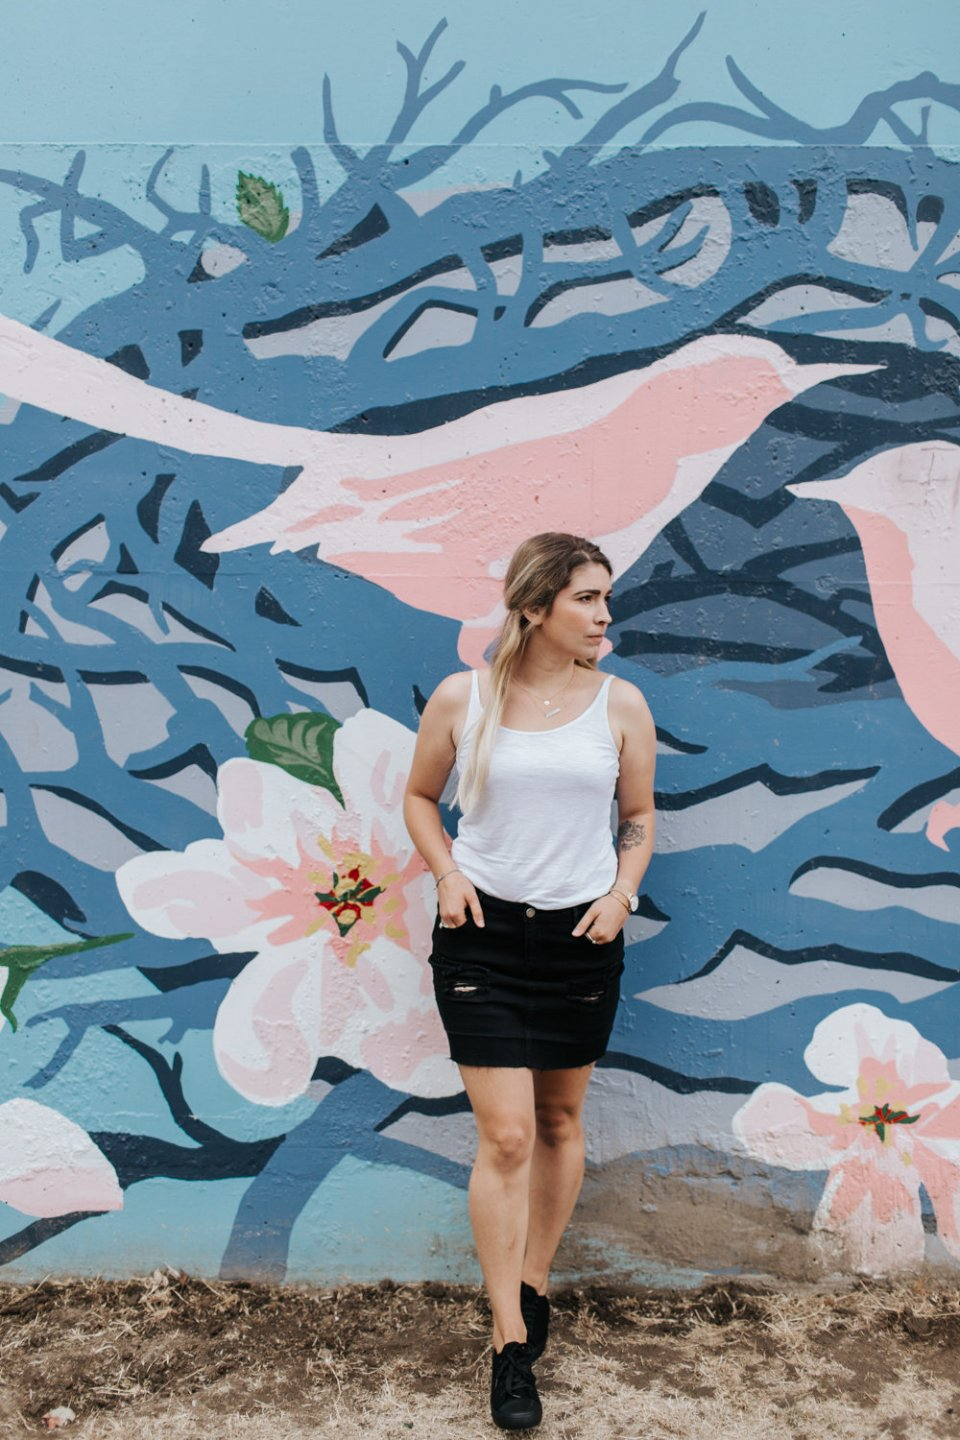 15 Murals in Vanvouver, British Columbia | Strathcona and Main Street Murals